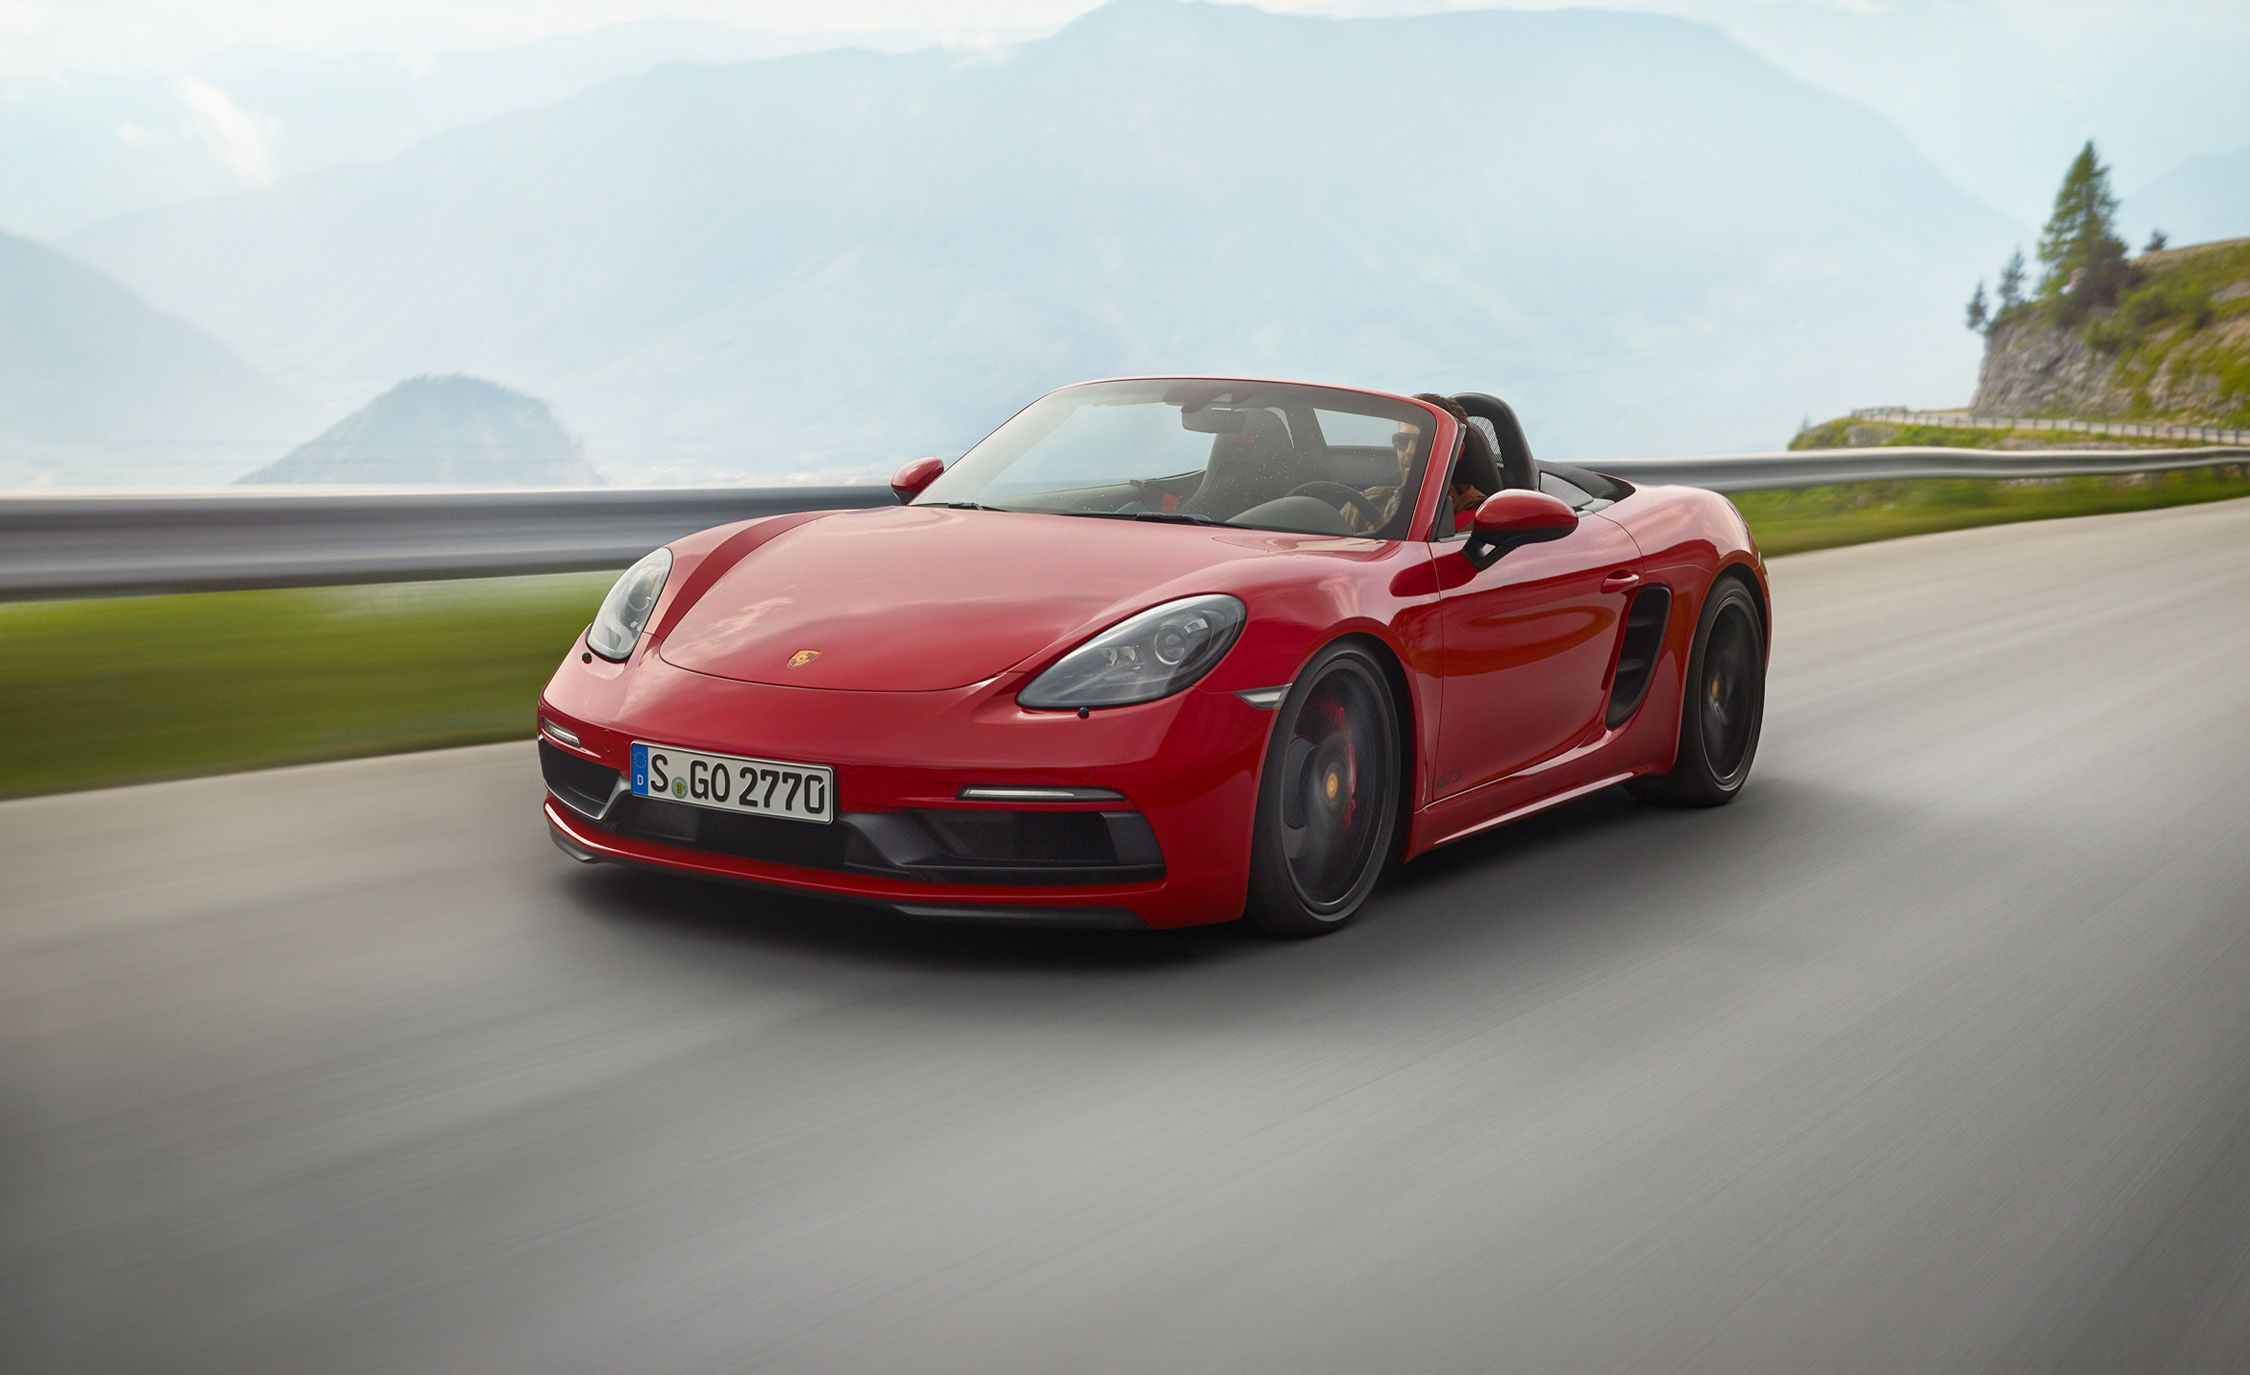 2019 Porsche 718 Boxster Reviews | Porsche 718 Boxster Price, Photos, and  Specs | Car and Driver